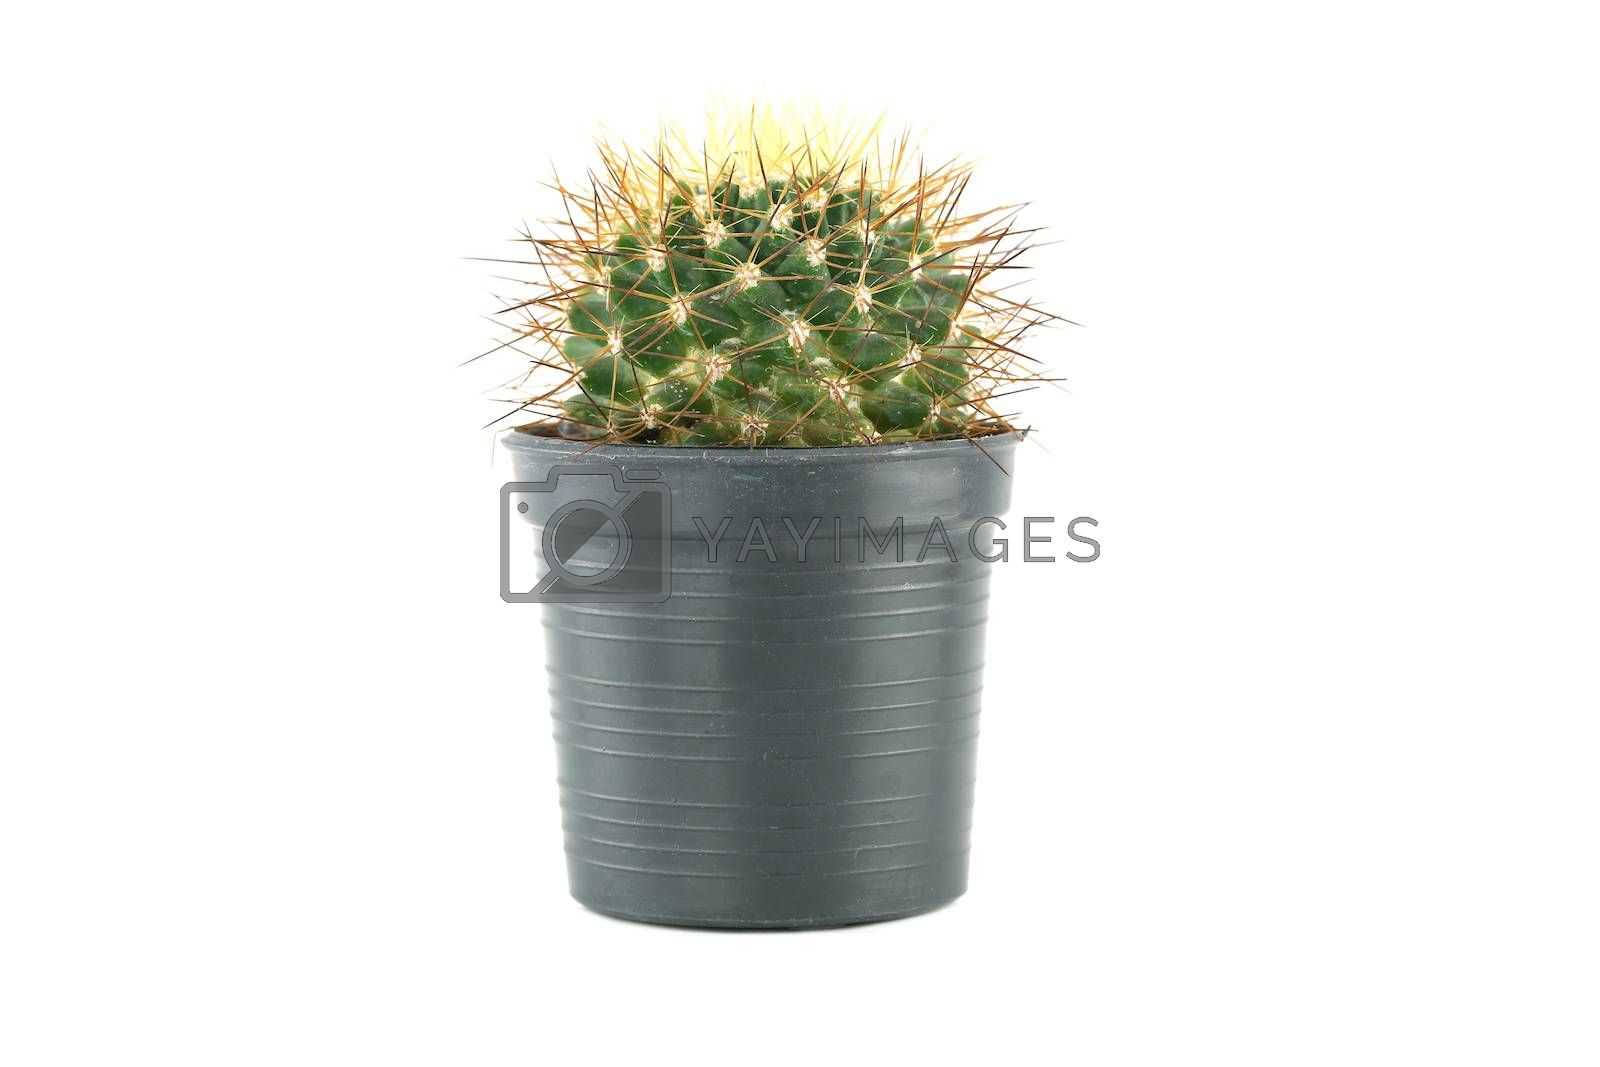 cactus in flower pot on white background.